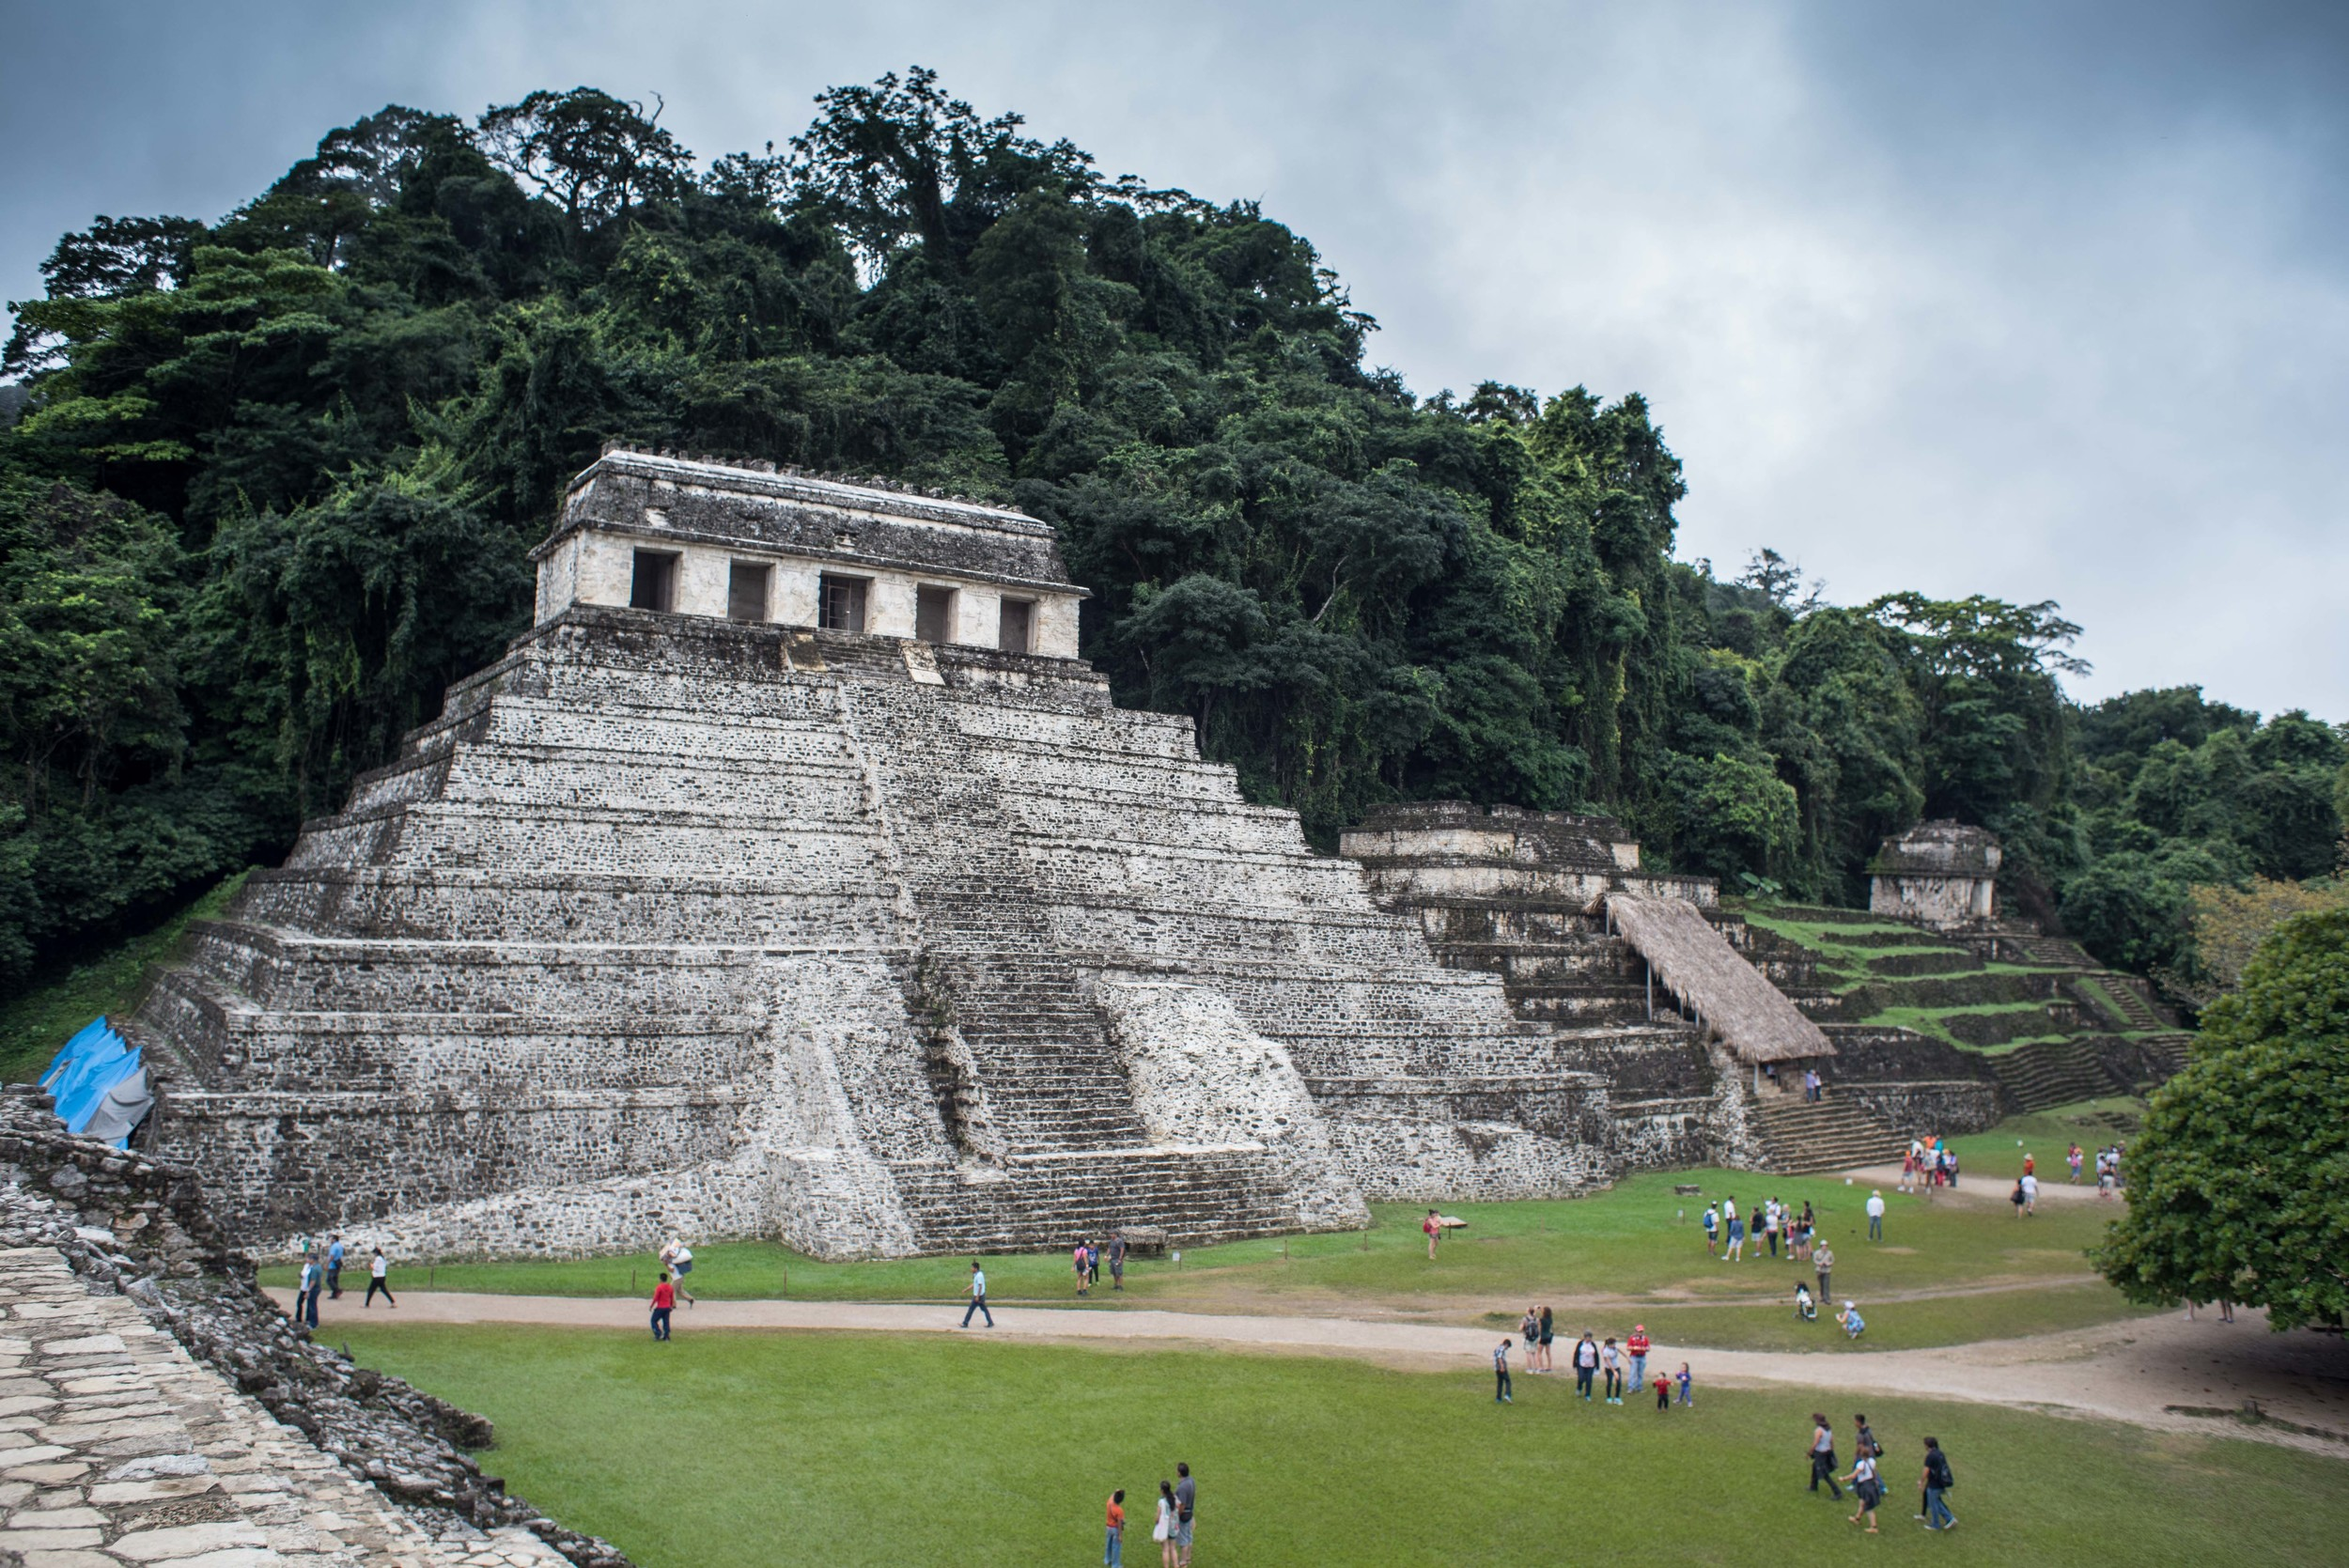 Palenque acrheological site